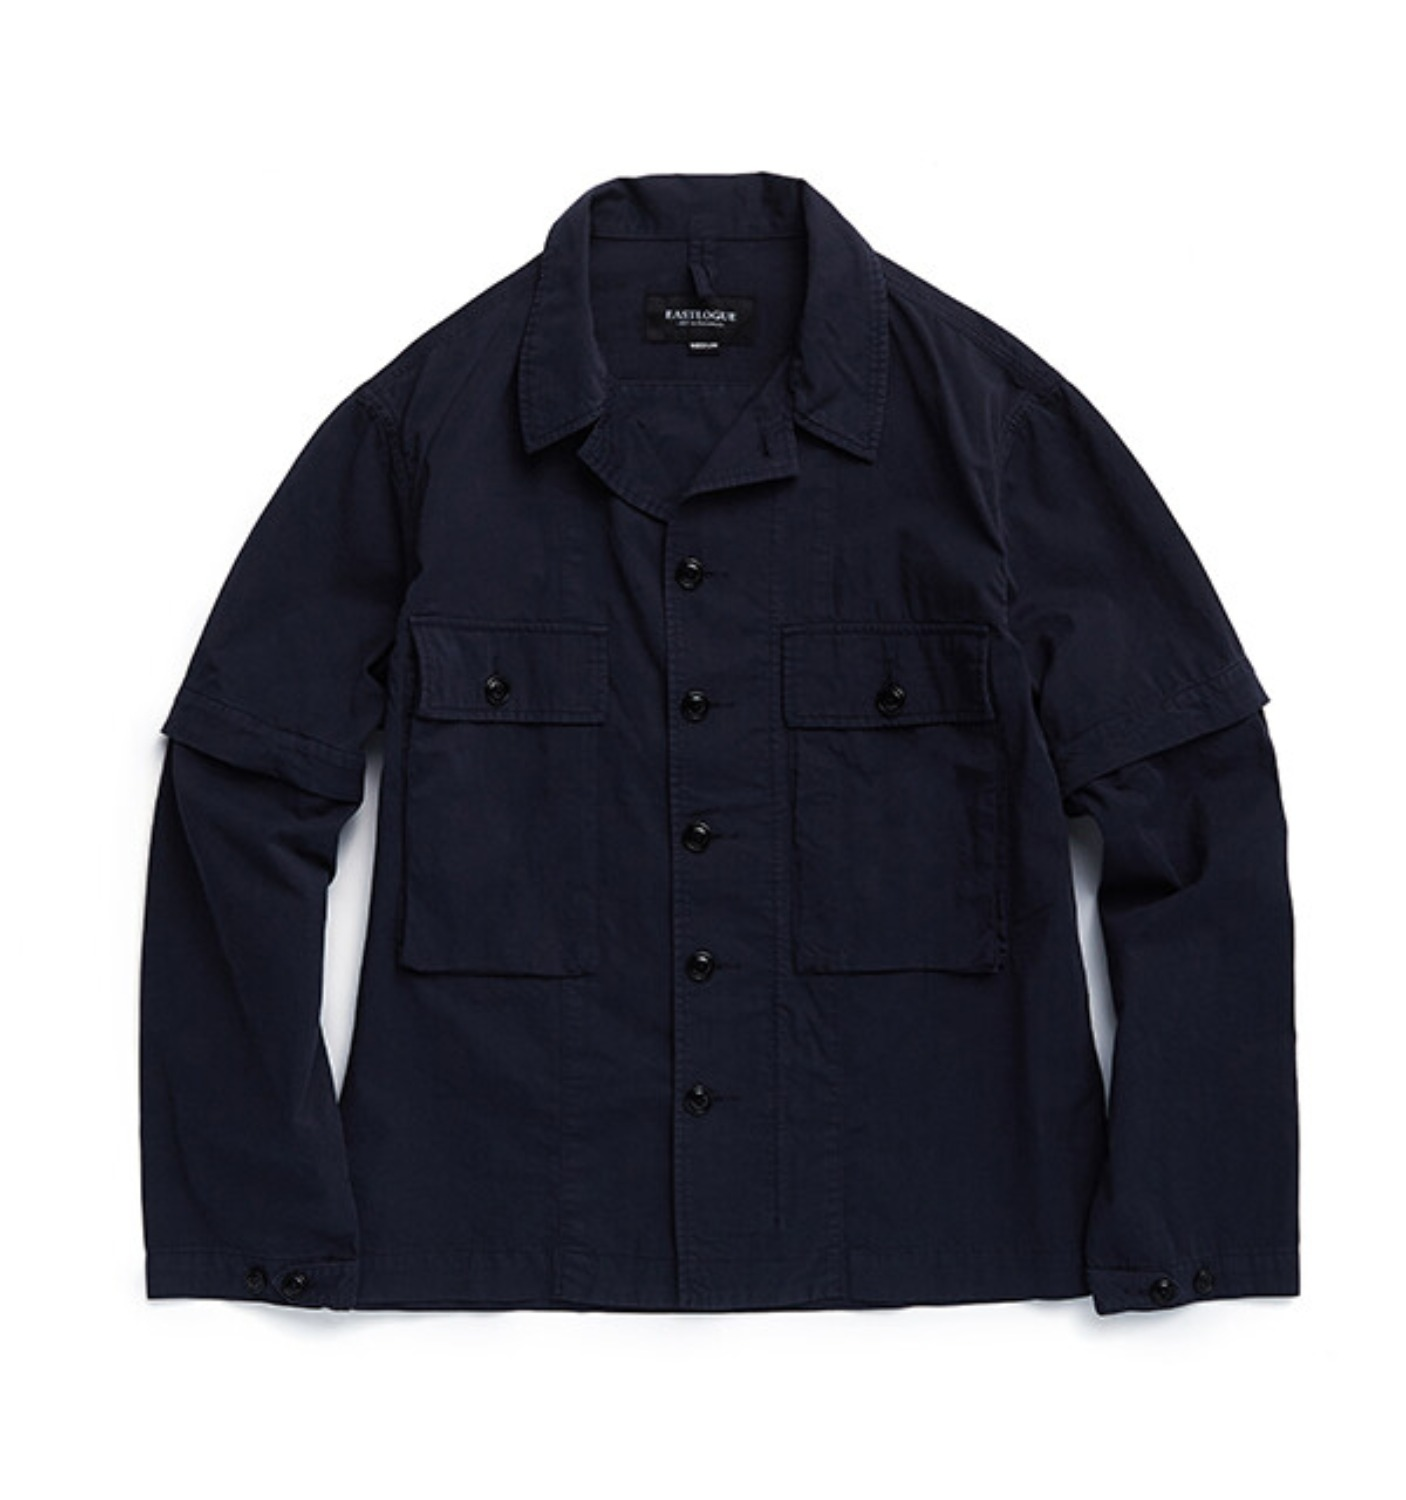 KW M43 JACKET DYED NAVY